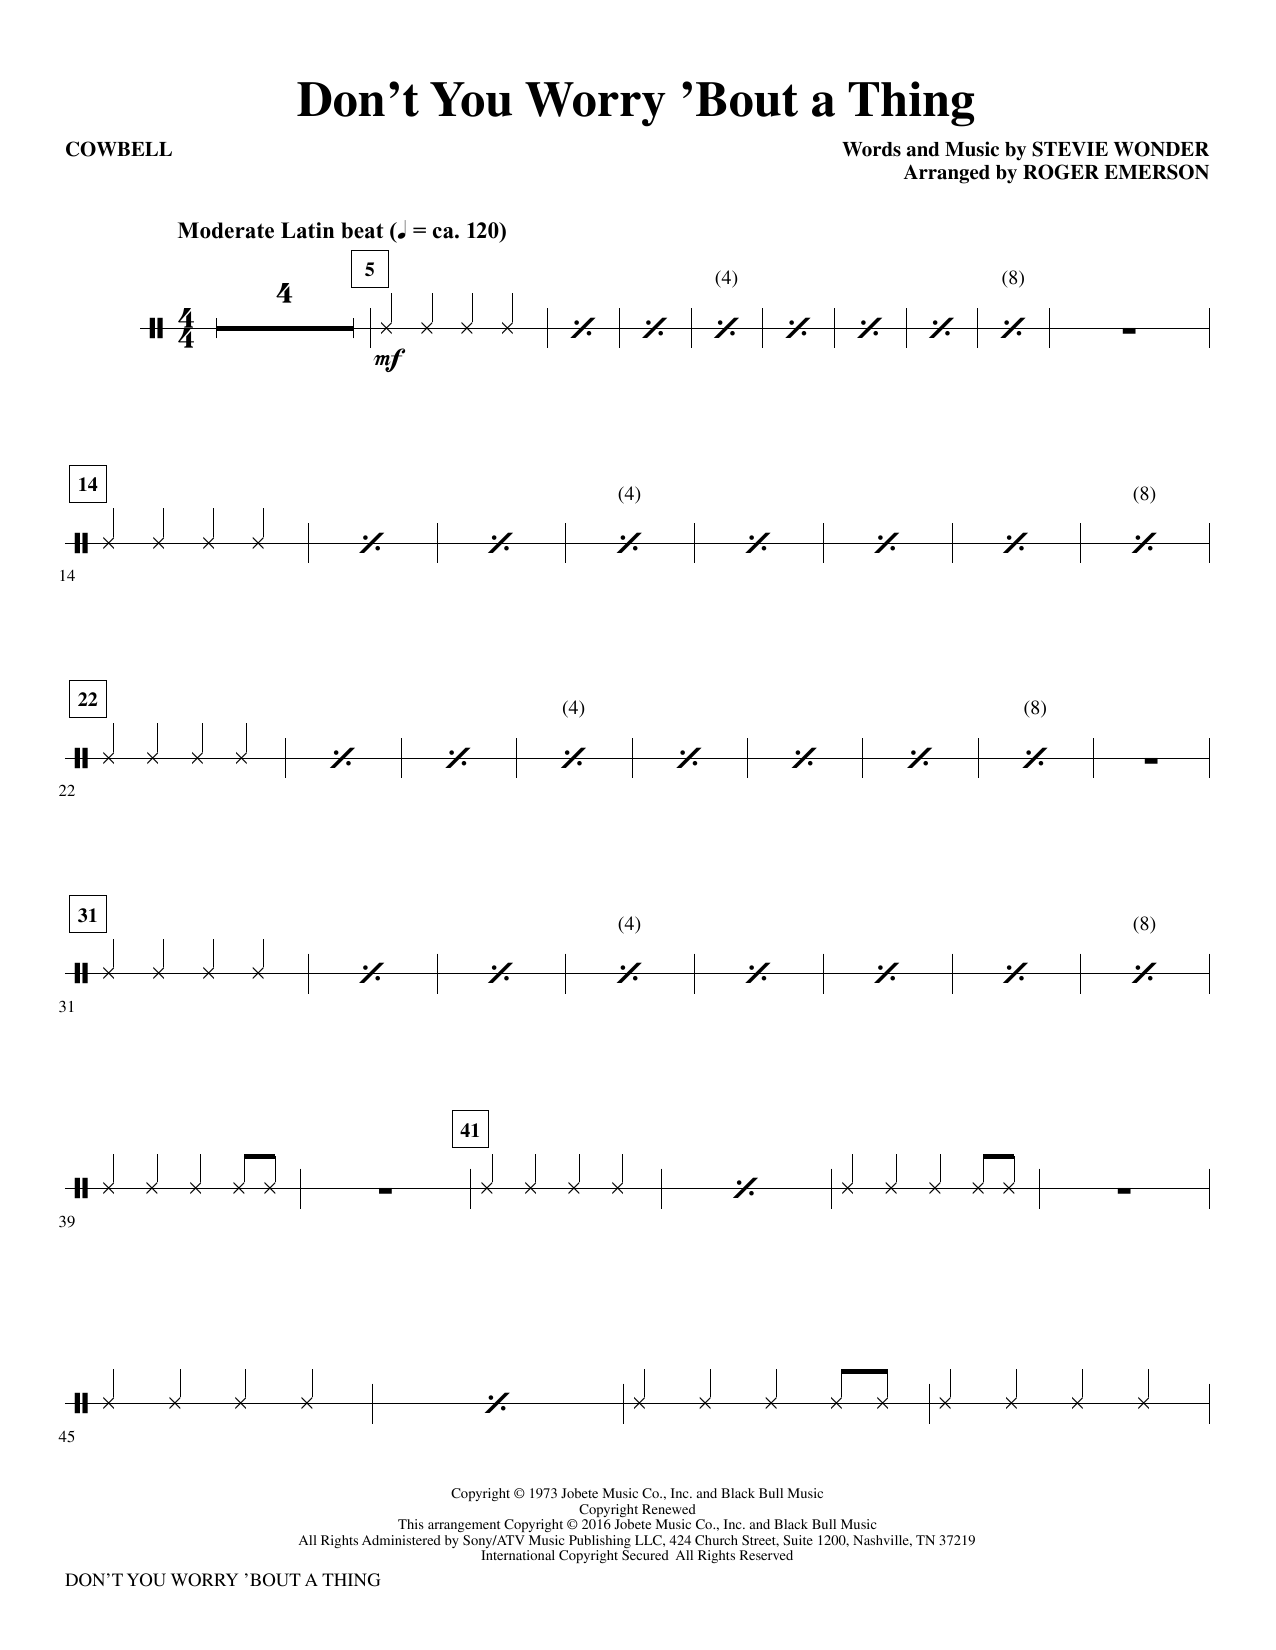 Stevie Wonder Don't You Worry 'Bout a Thing (arr. Roger Emerson) - Cowbell sheet music notes and chords. Download Printable PDF.